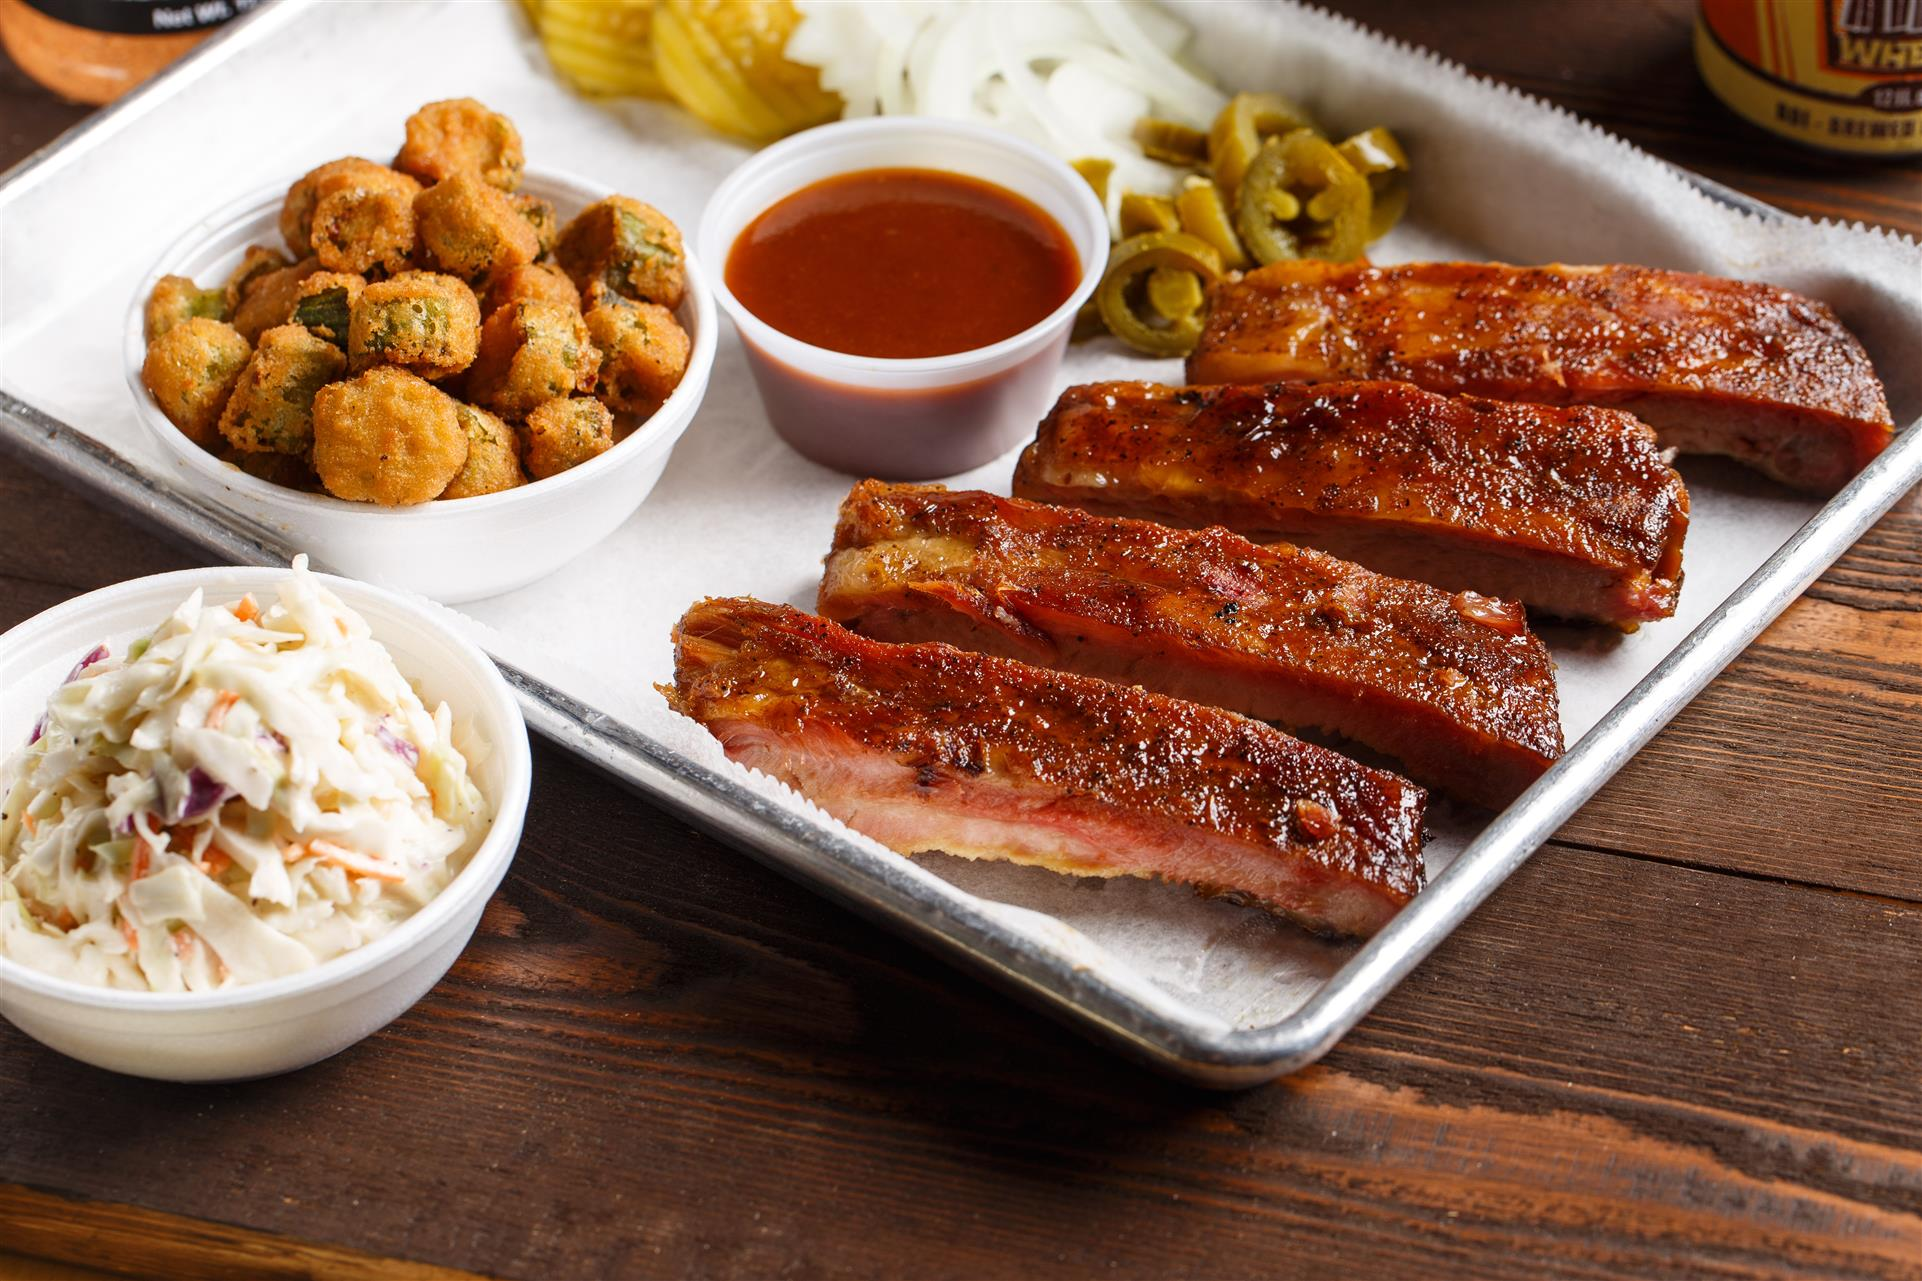 BBQ ribs with a side of fried pickles